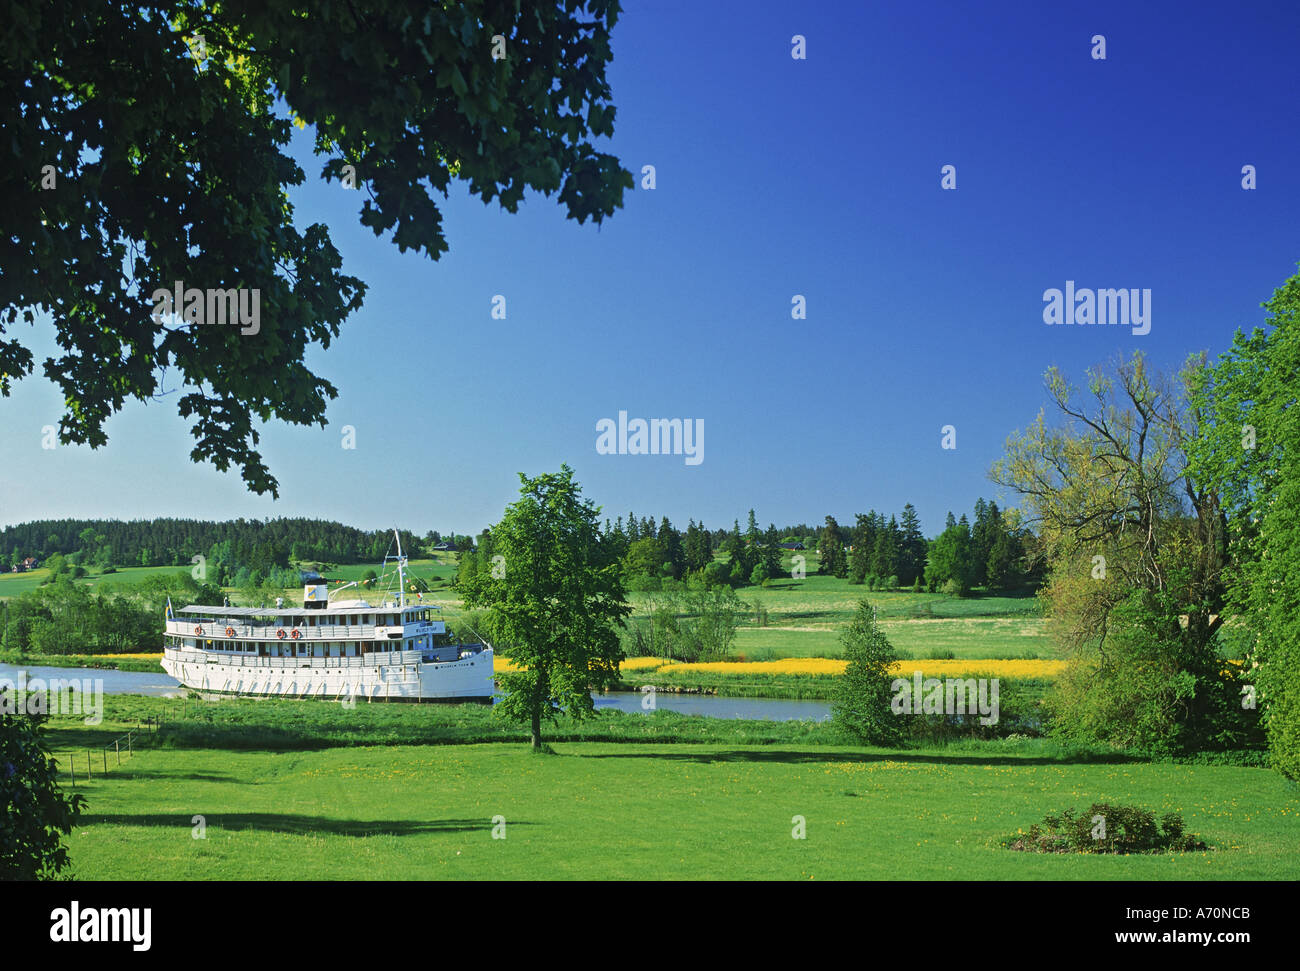 Passenger steamship crossing Sweden on Gota Canal between Stockholm and Gothenburg - Stock Image